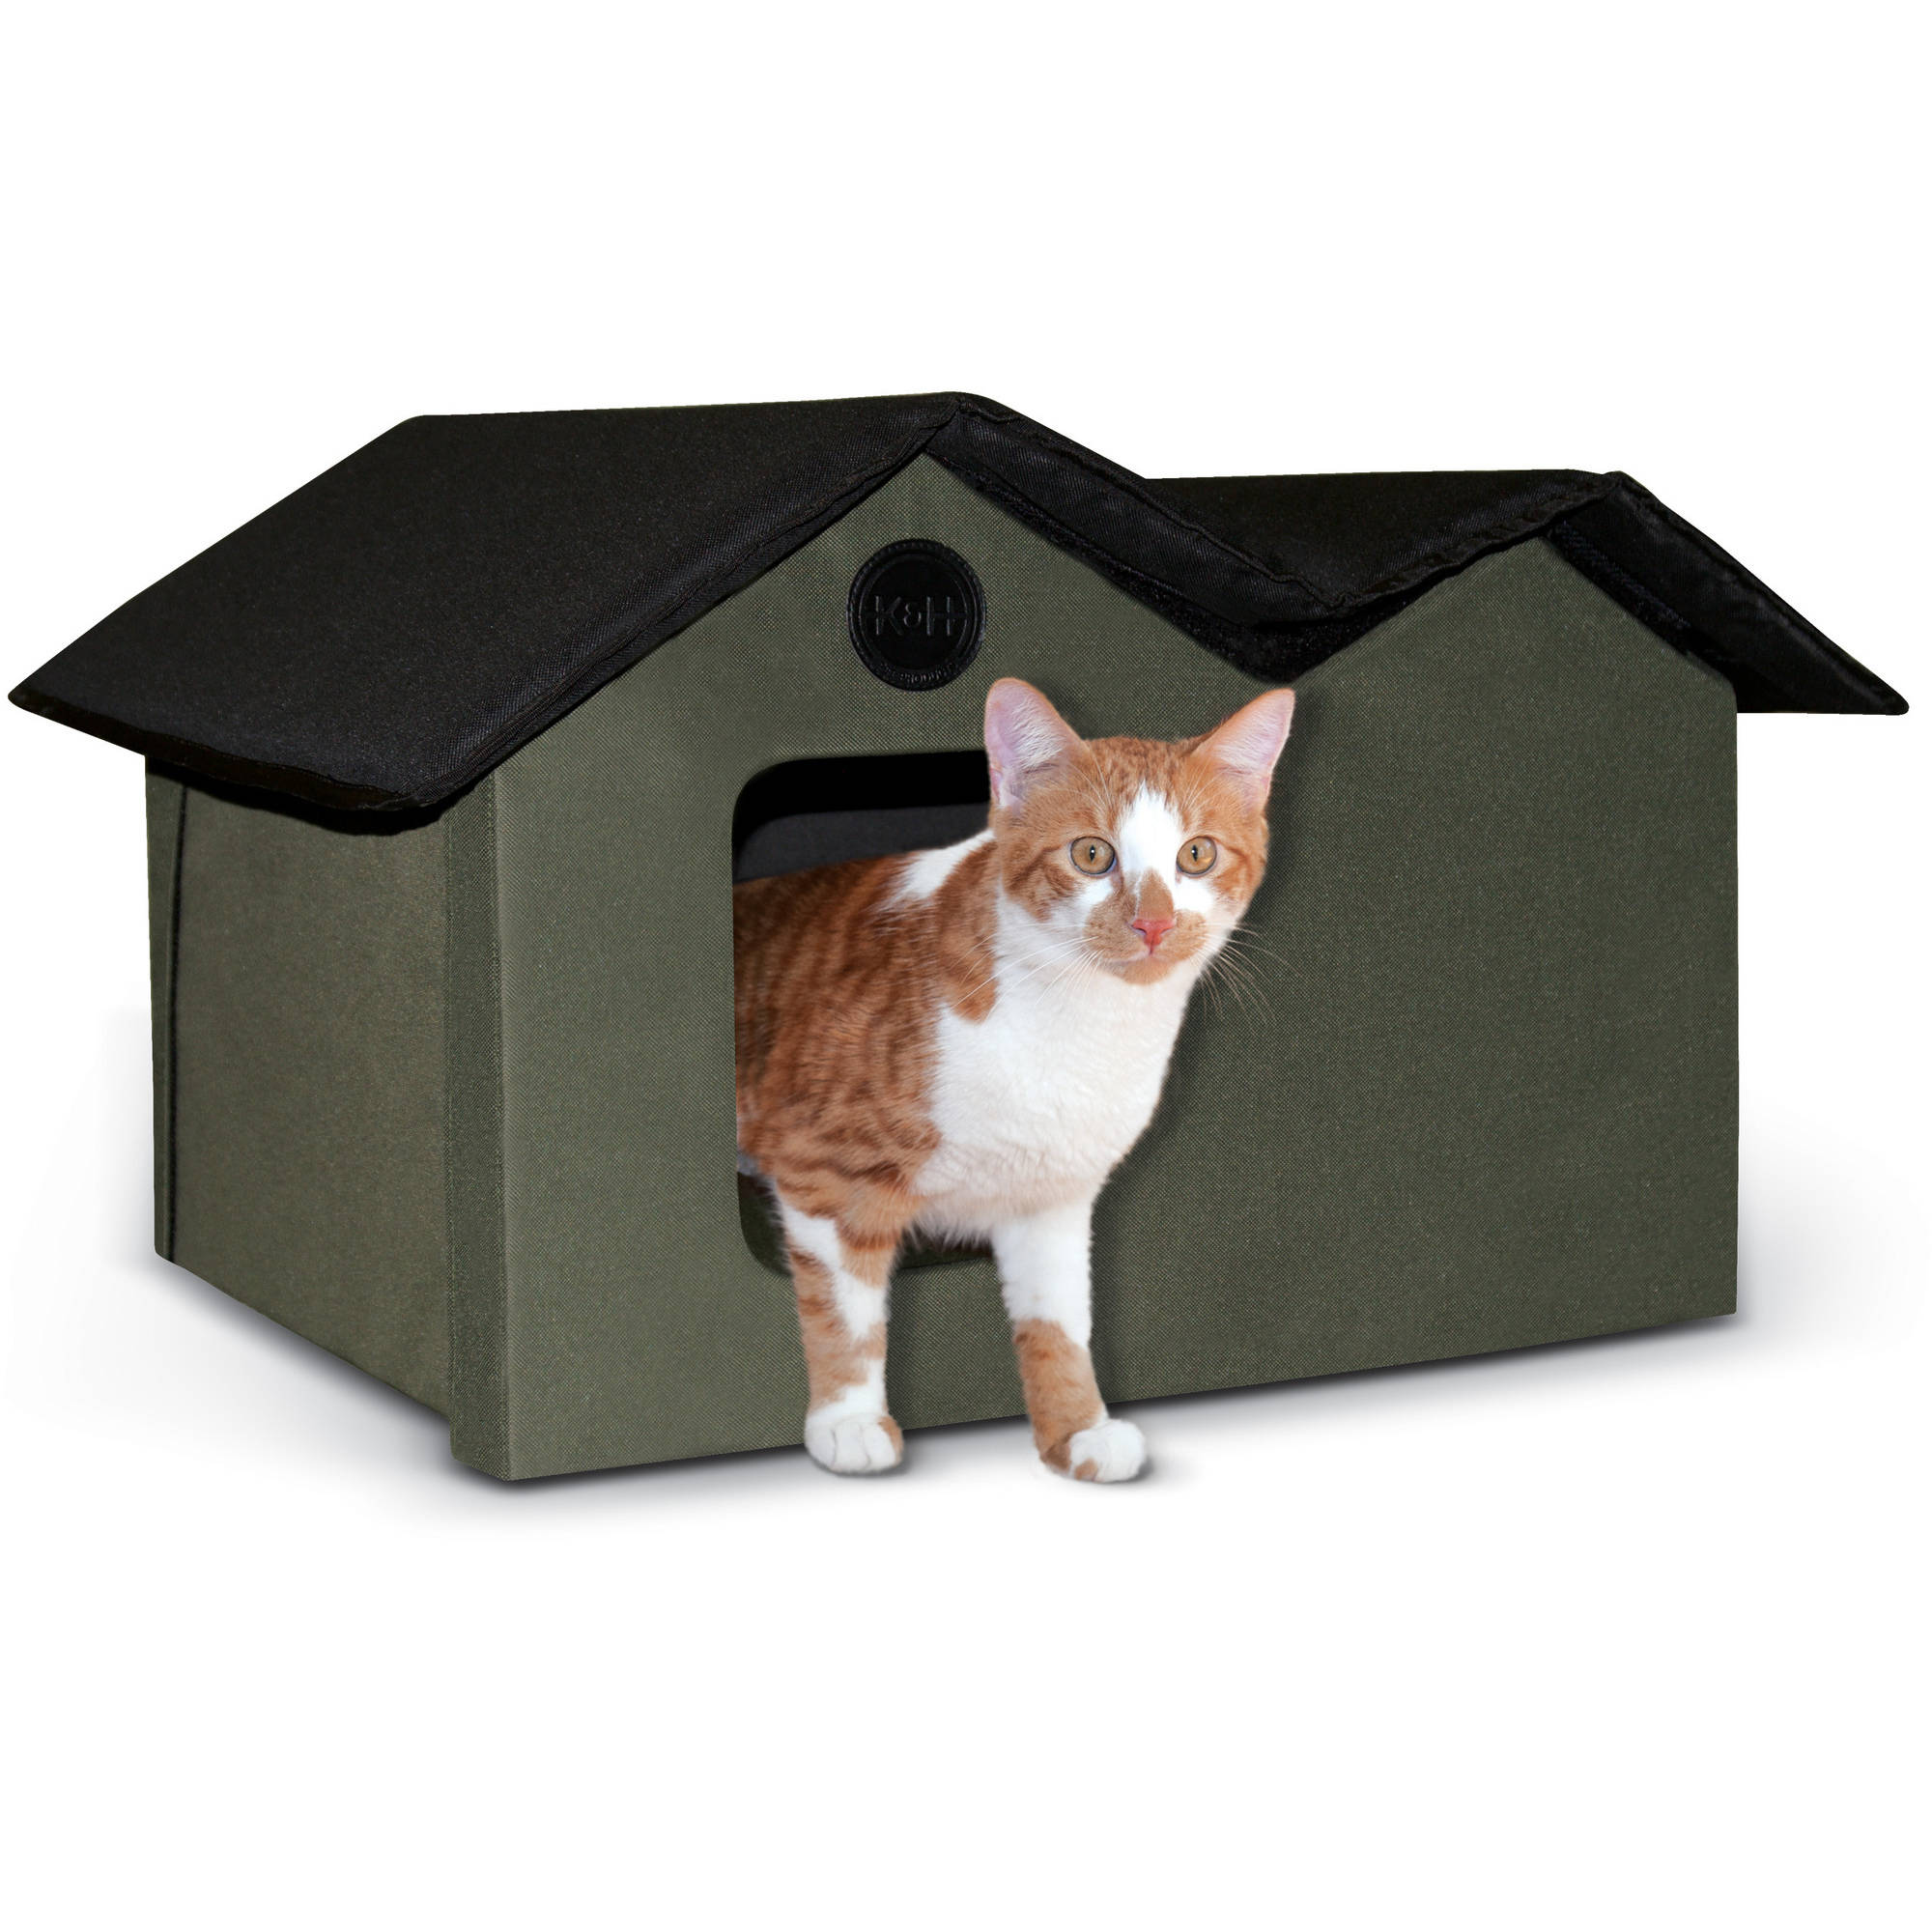 K&H Outdoor Heated Kitty House, Extra-Wide (Heated or Unheated)